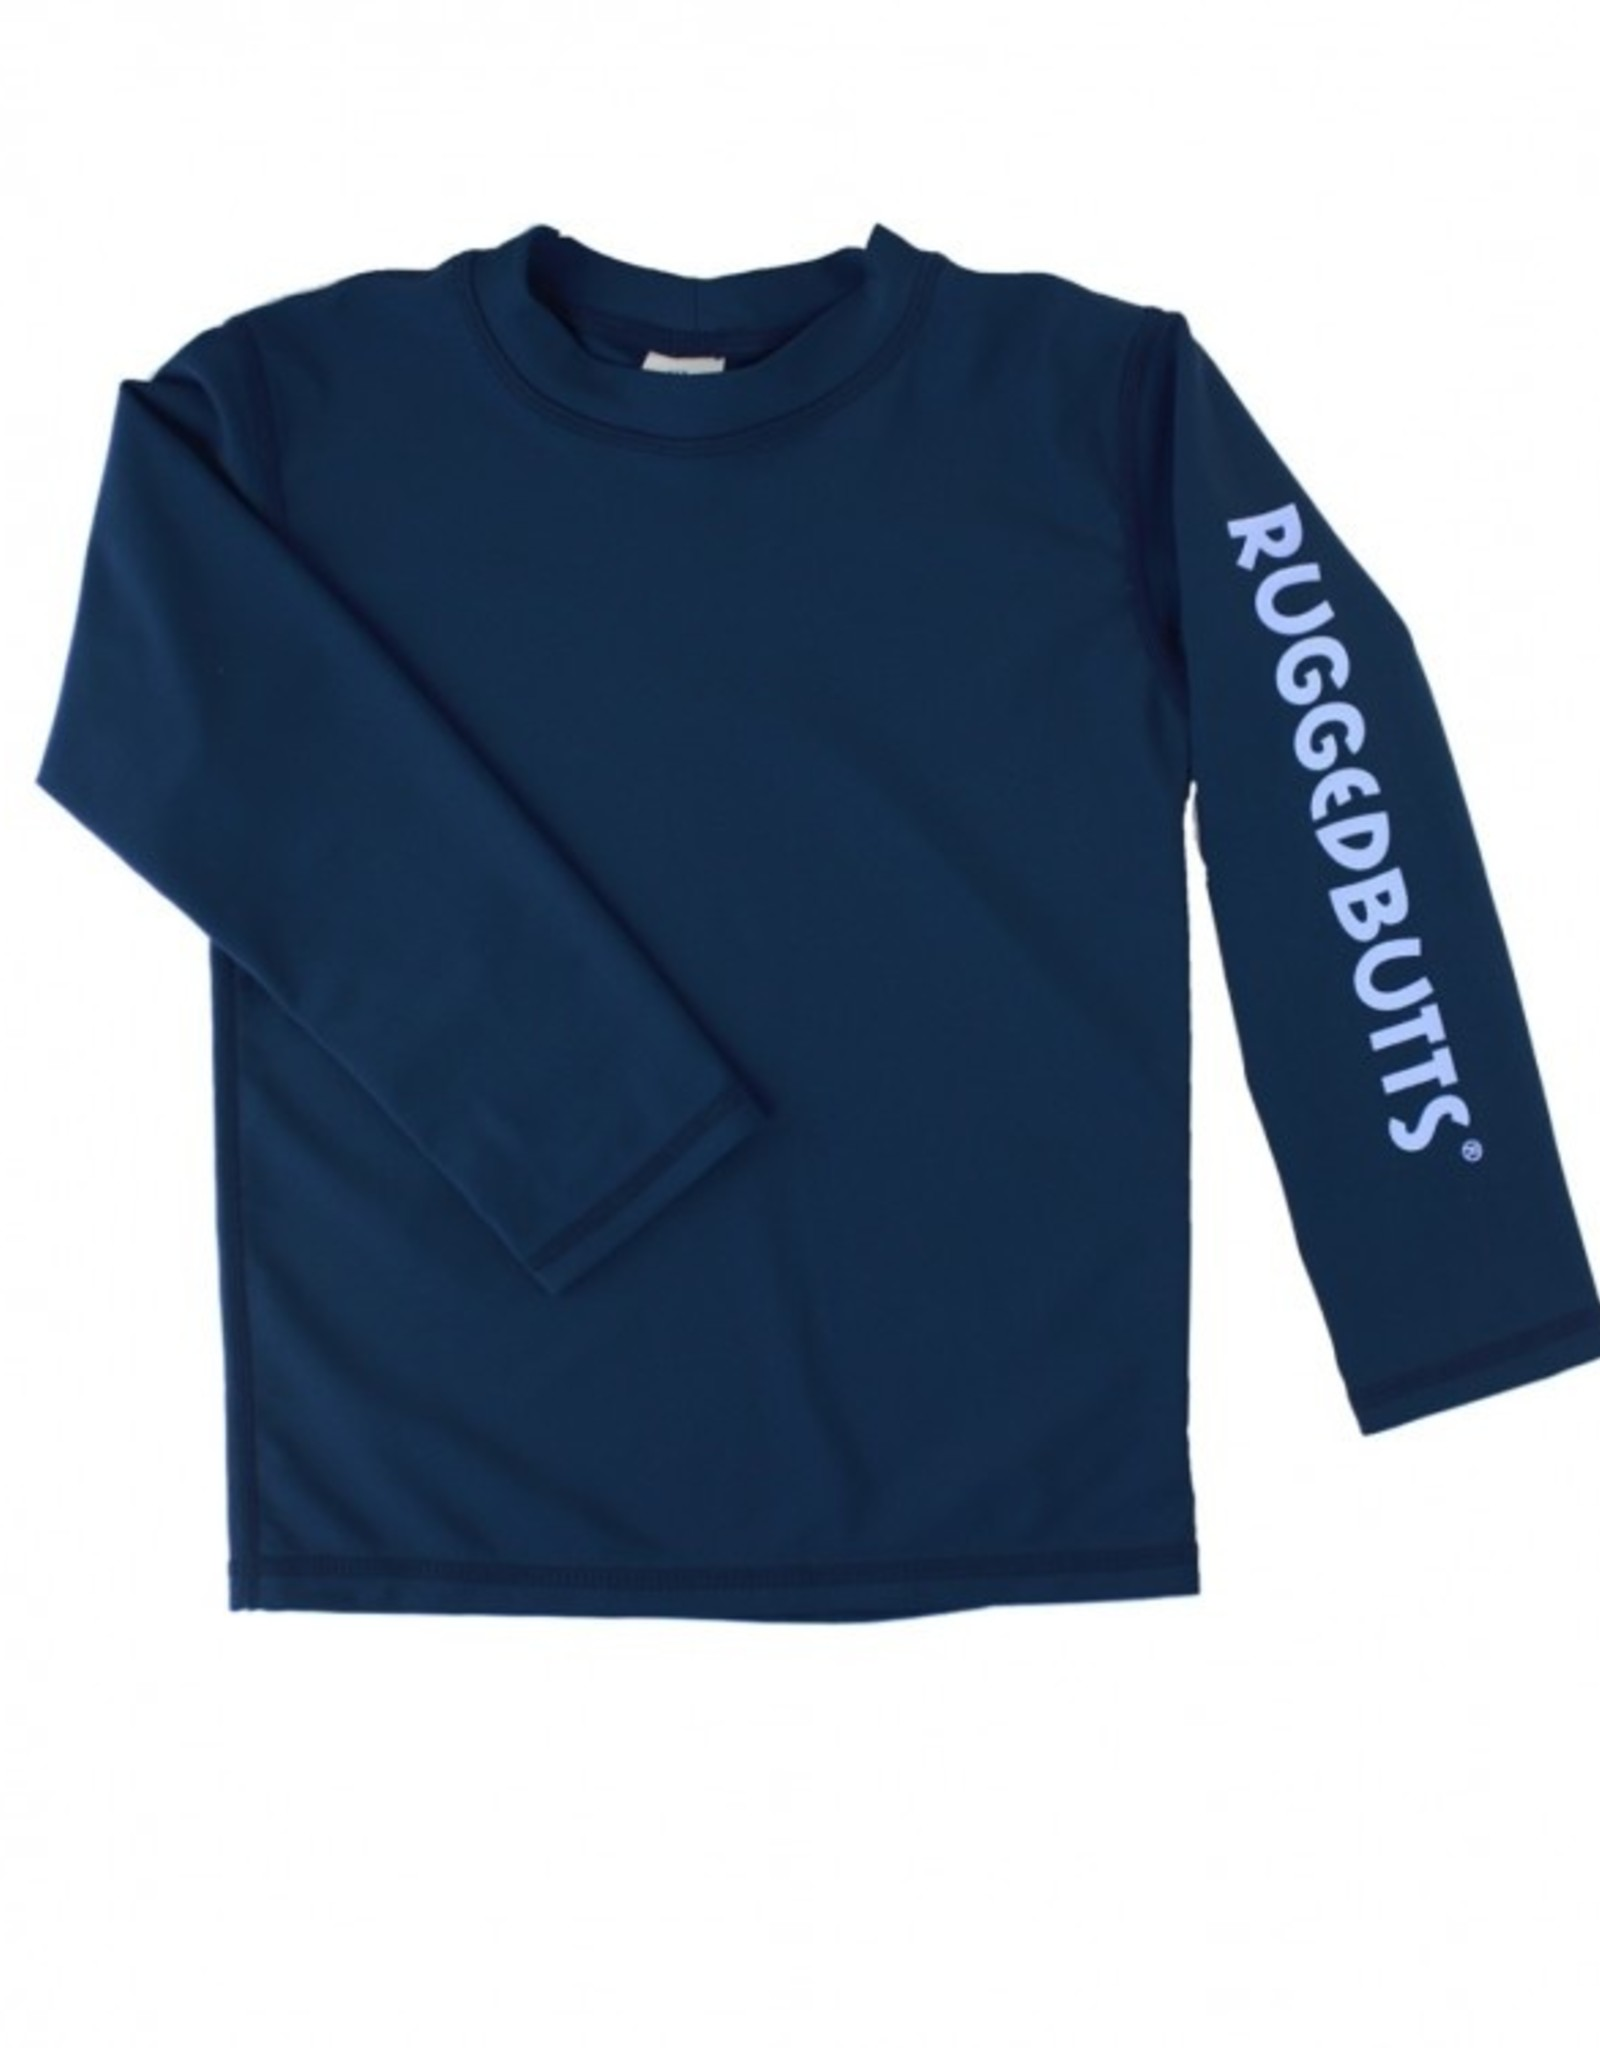 RuggedButts Navy Rash Guard